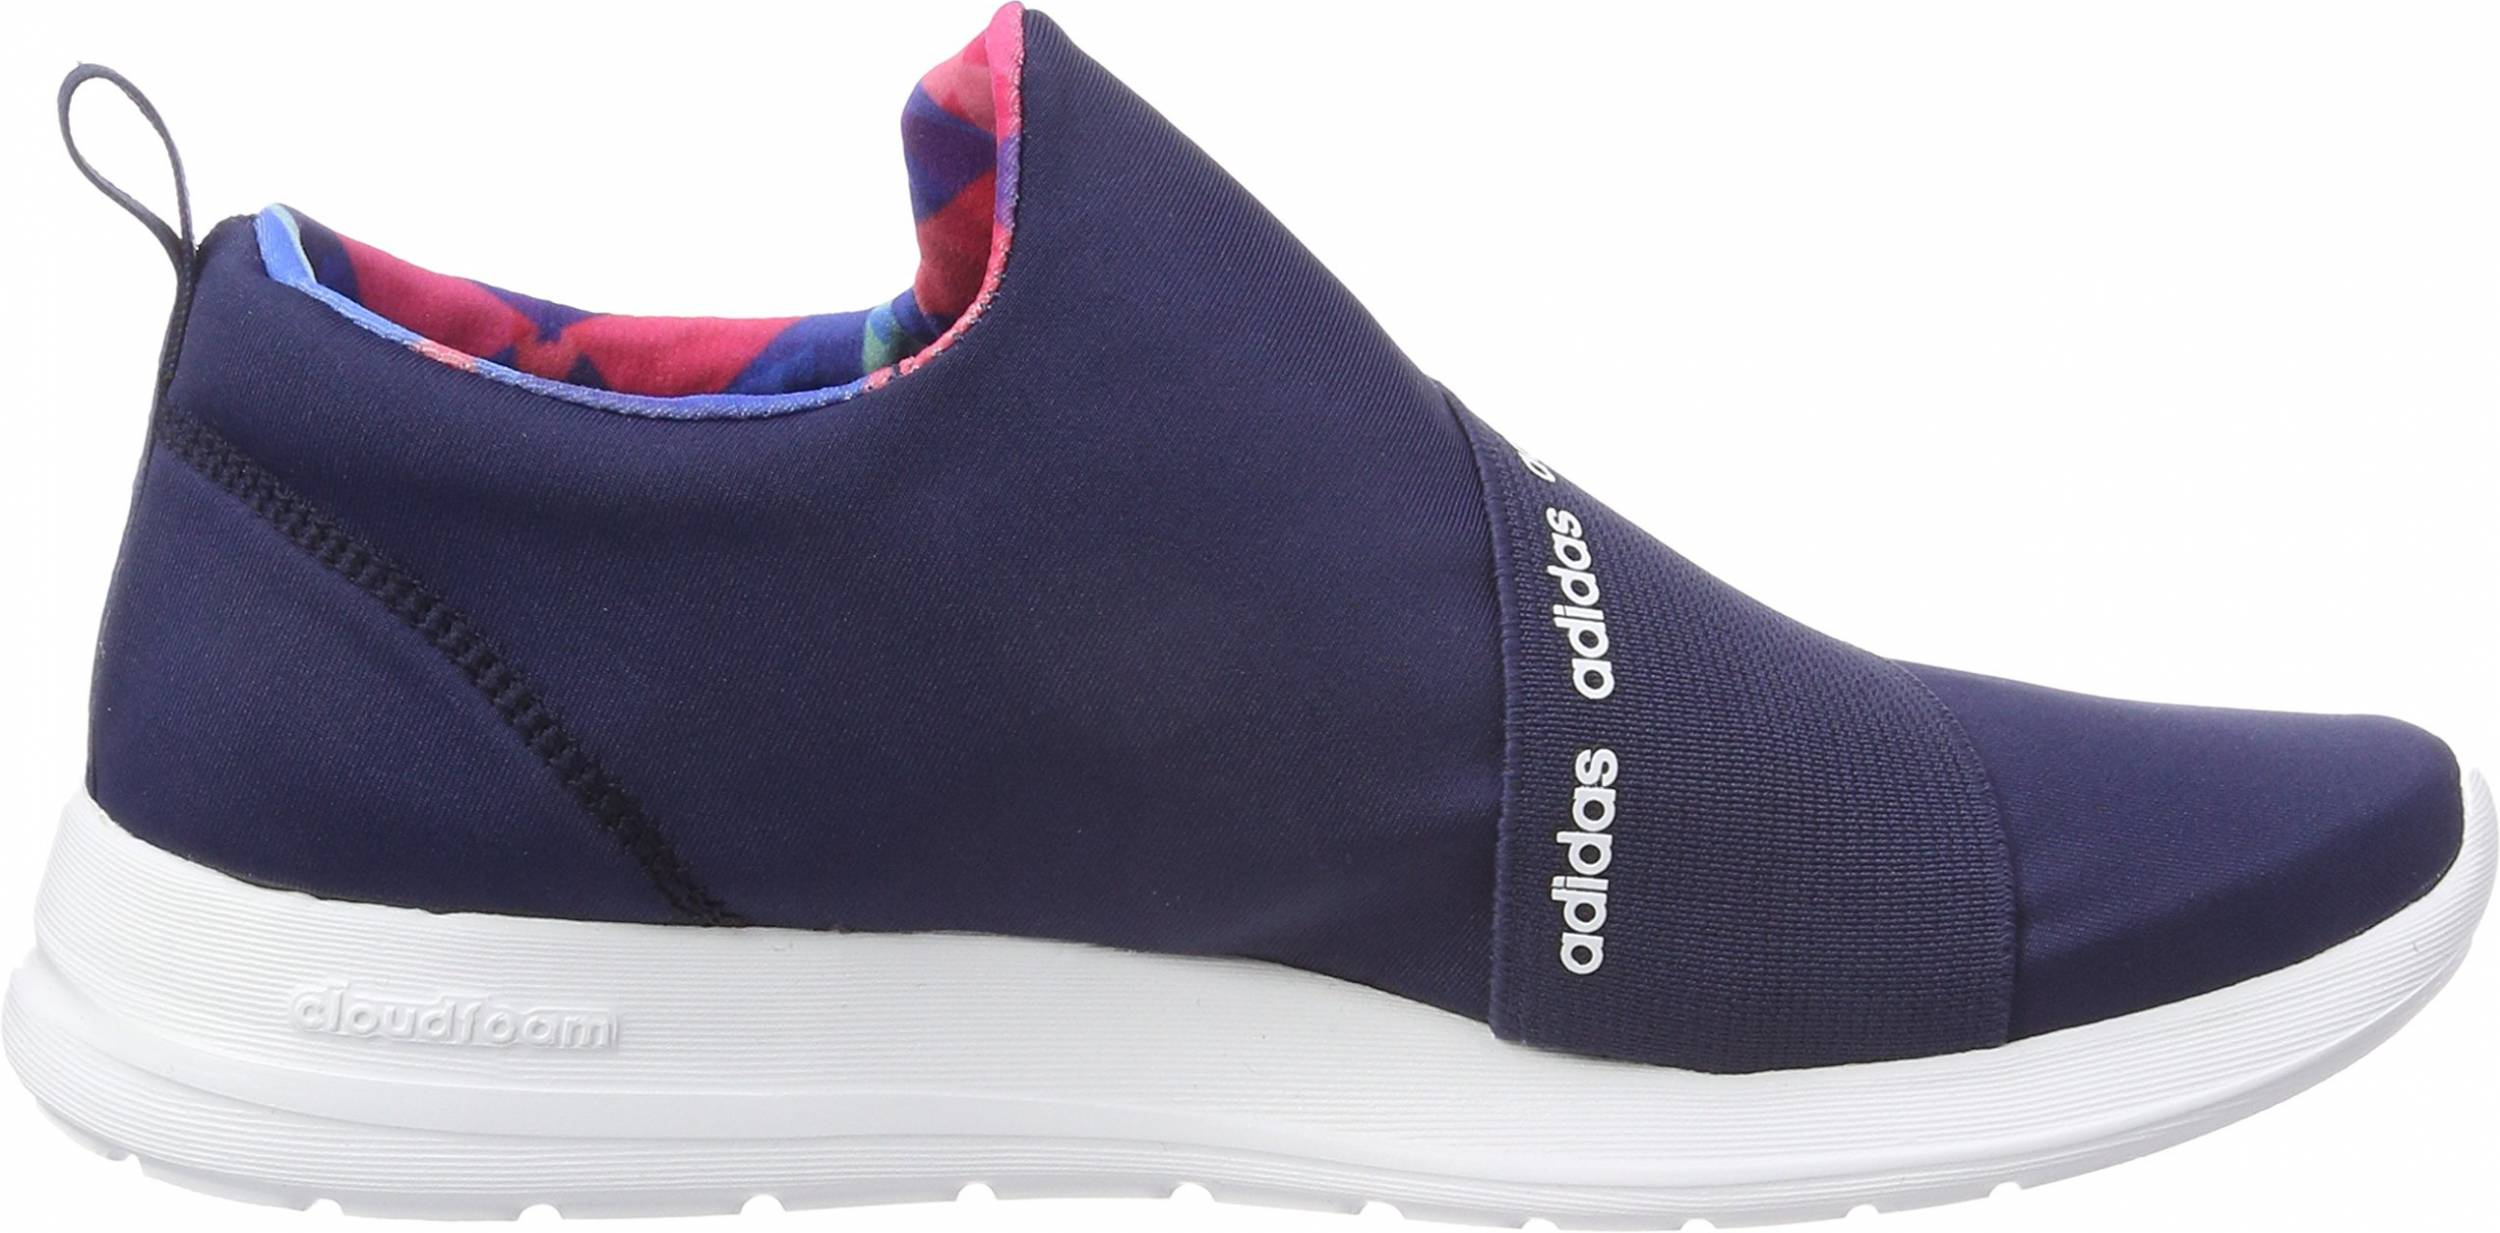 Purchase > cloudfoam refine adapt shoes, Up to 63% OFF